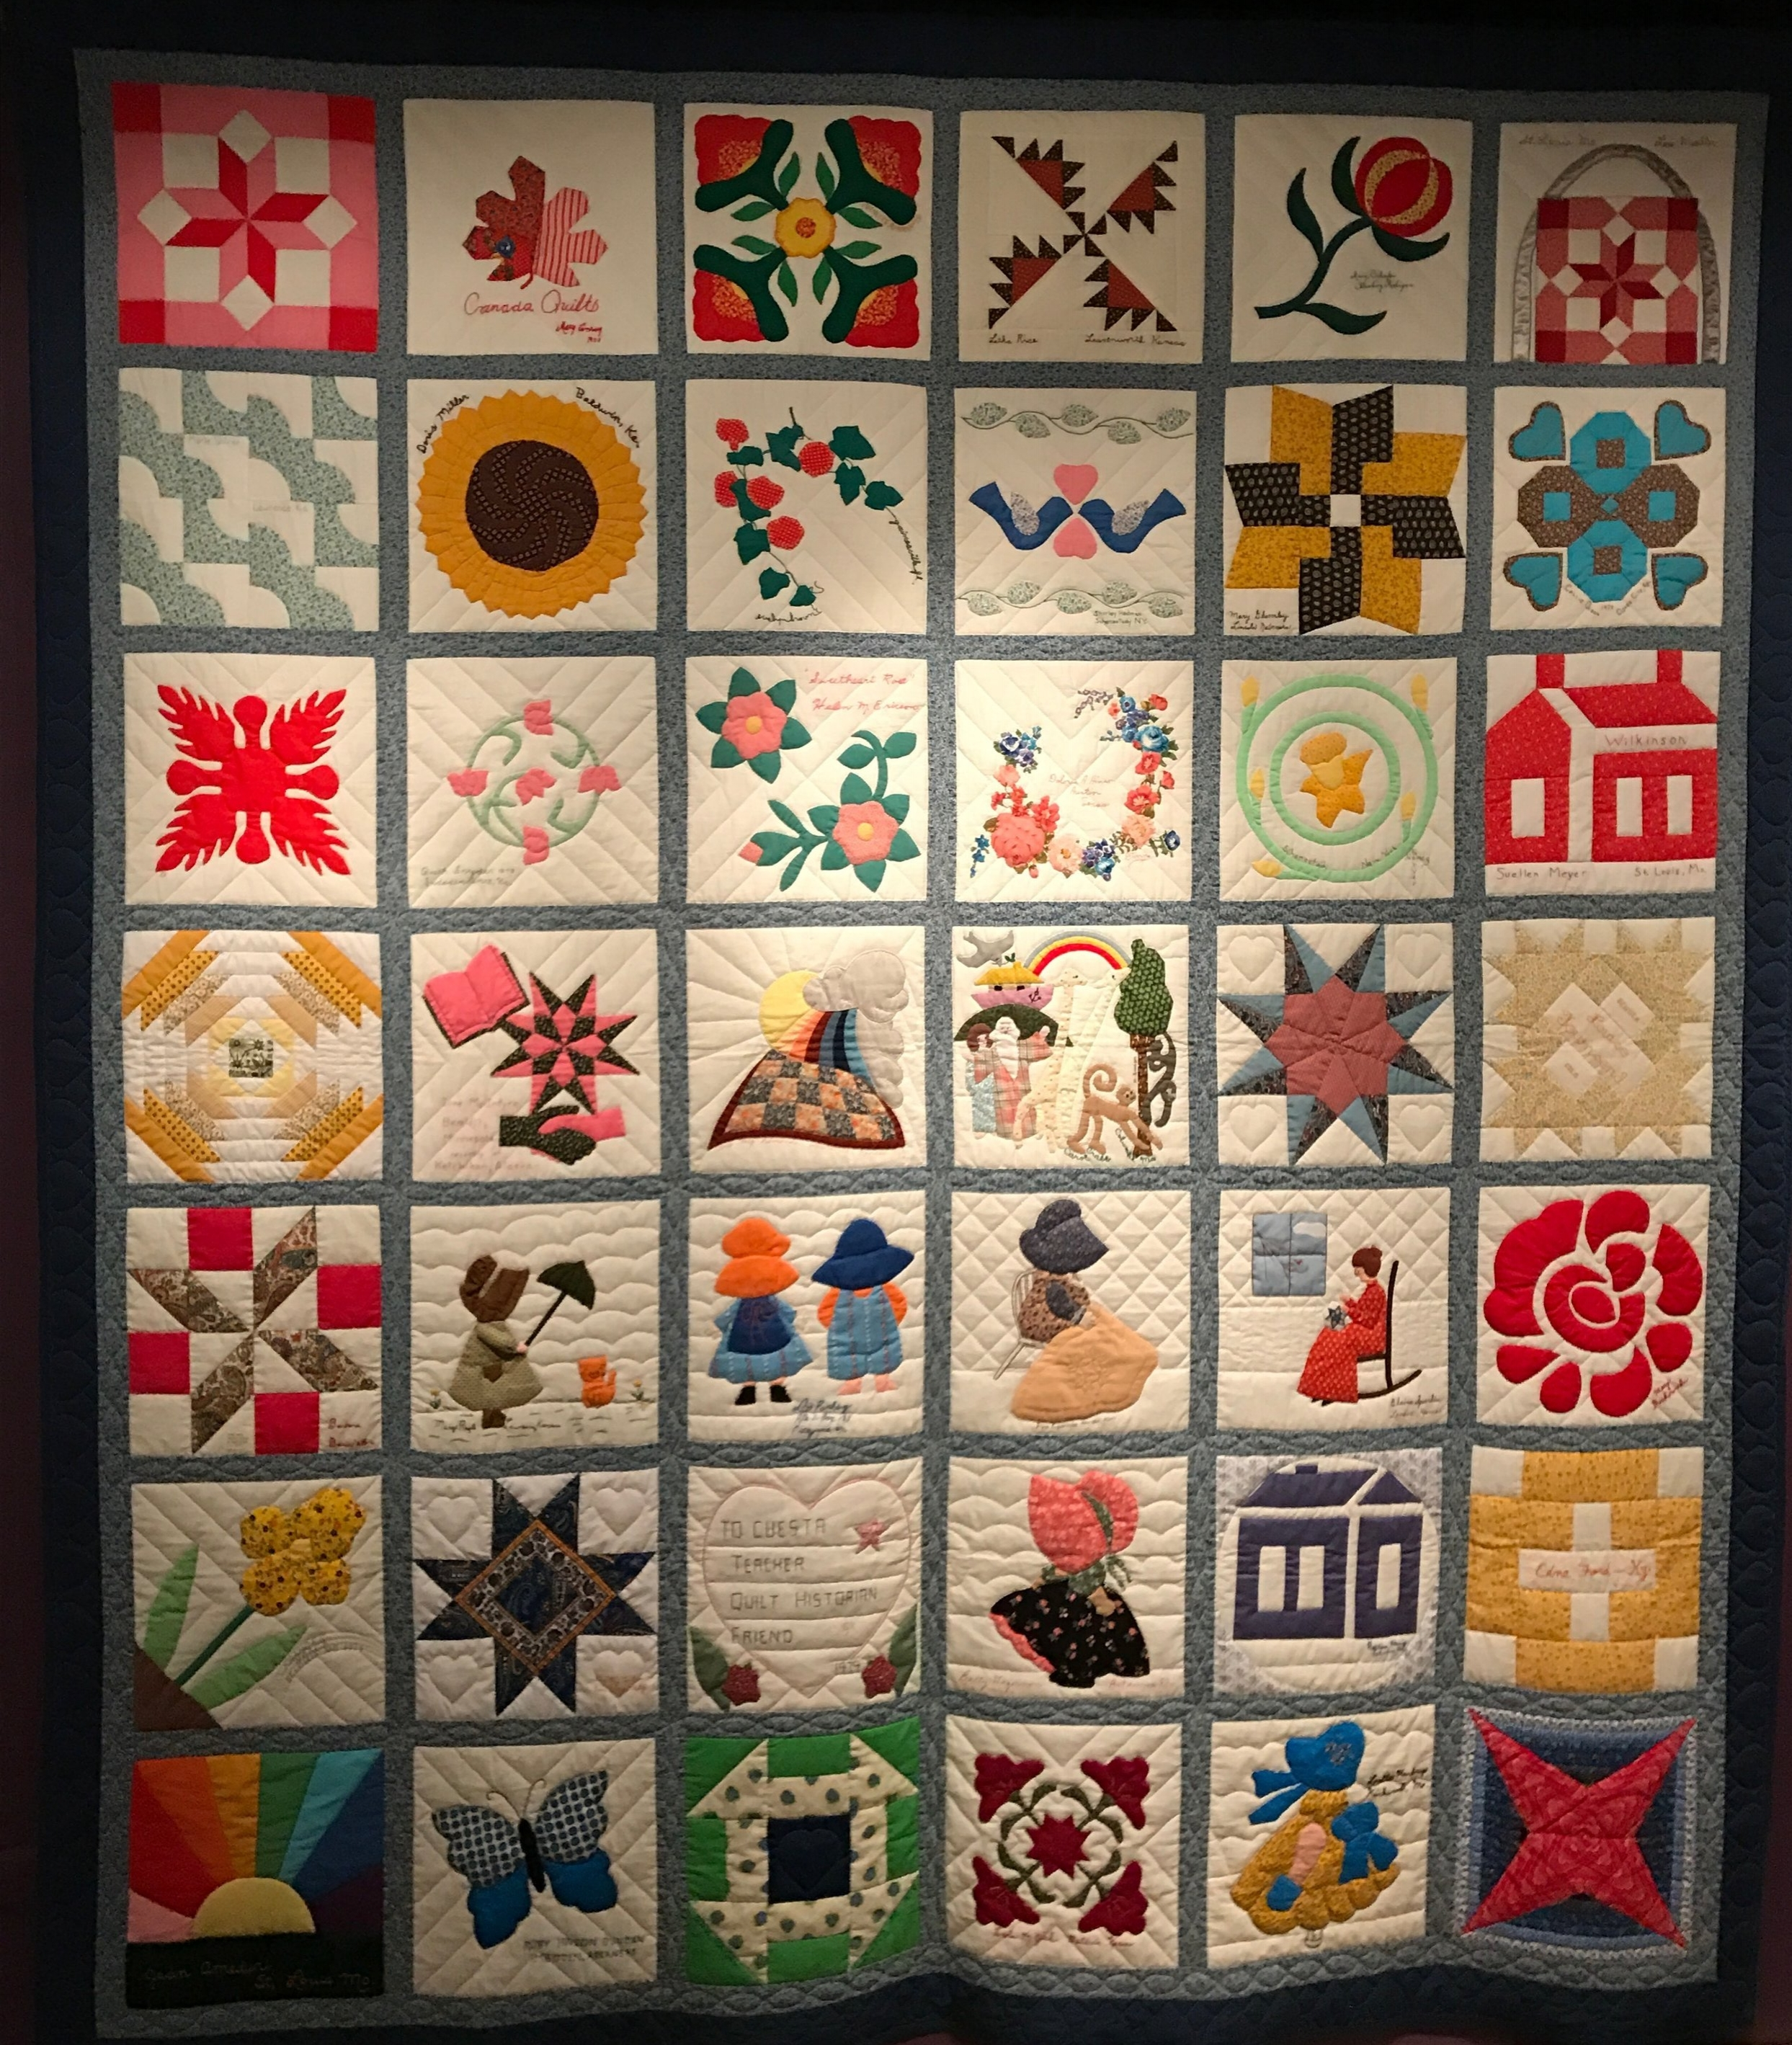 """This is friendship quilt made for Cuesta Benberry in 1979 by her friends, who were the """"who's who"""" of the quilting world. Each block is just gorgeous, and you could feel the love and joy that went into the quilt. I think my favorites are the third row from the top on the left or the third from the left on the top row."""